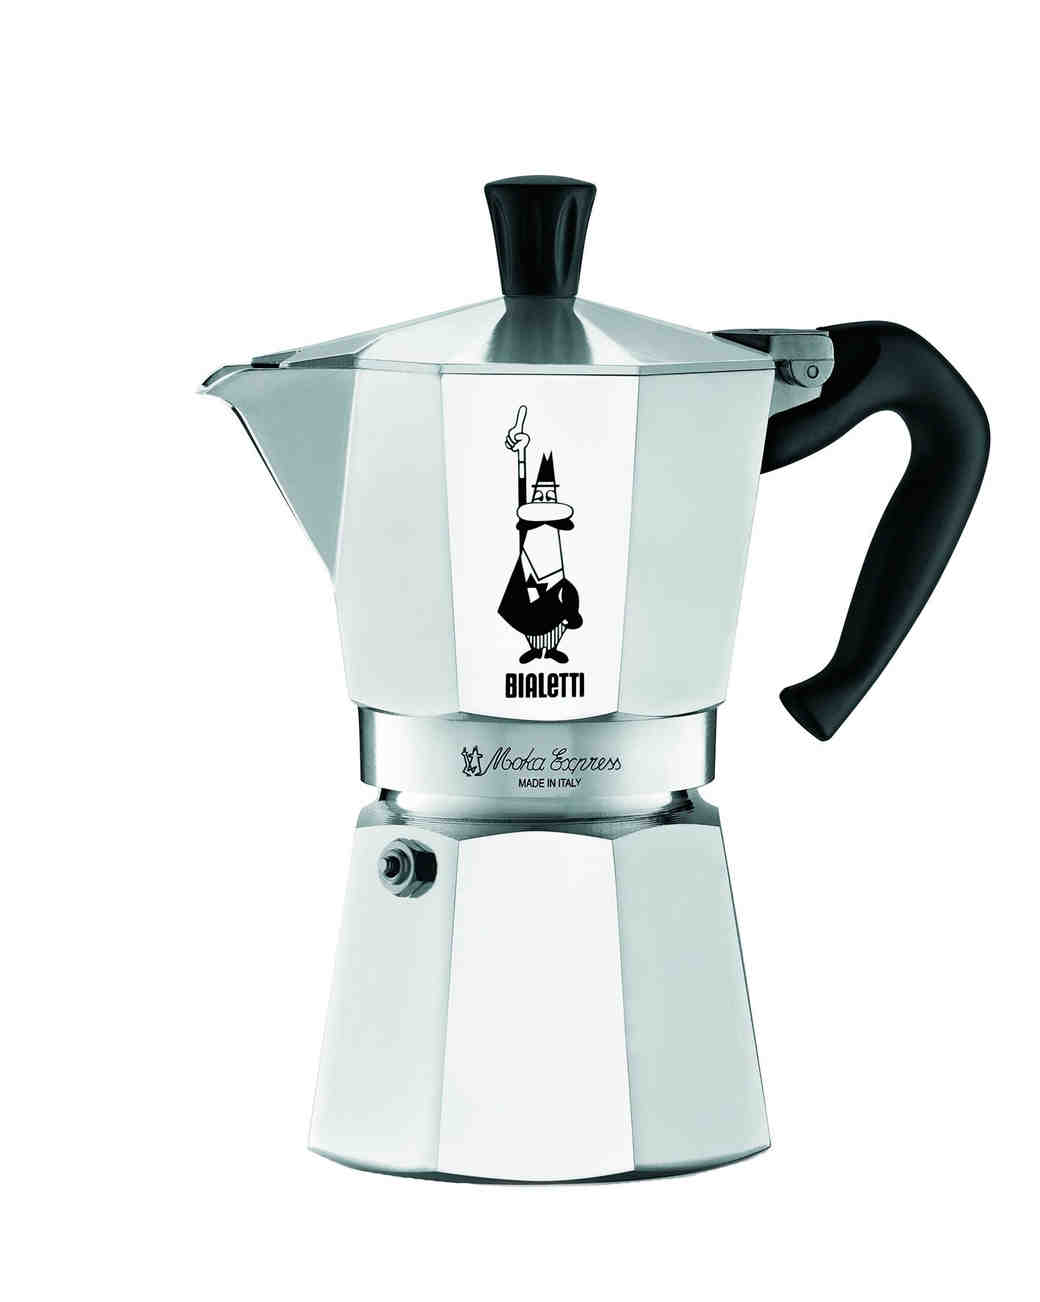 coffee-makers-registry-bialetti-0914.jpg